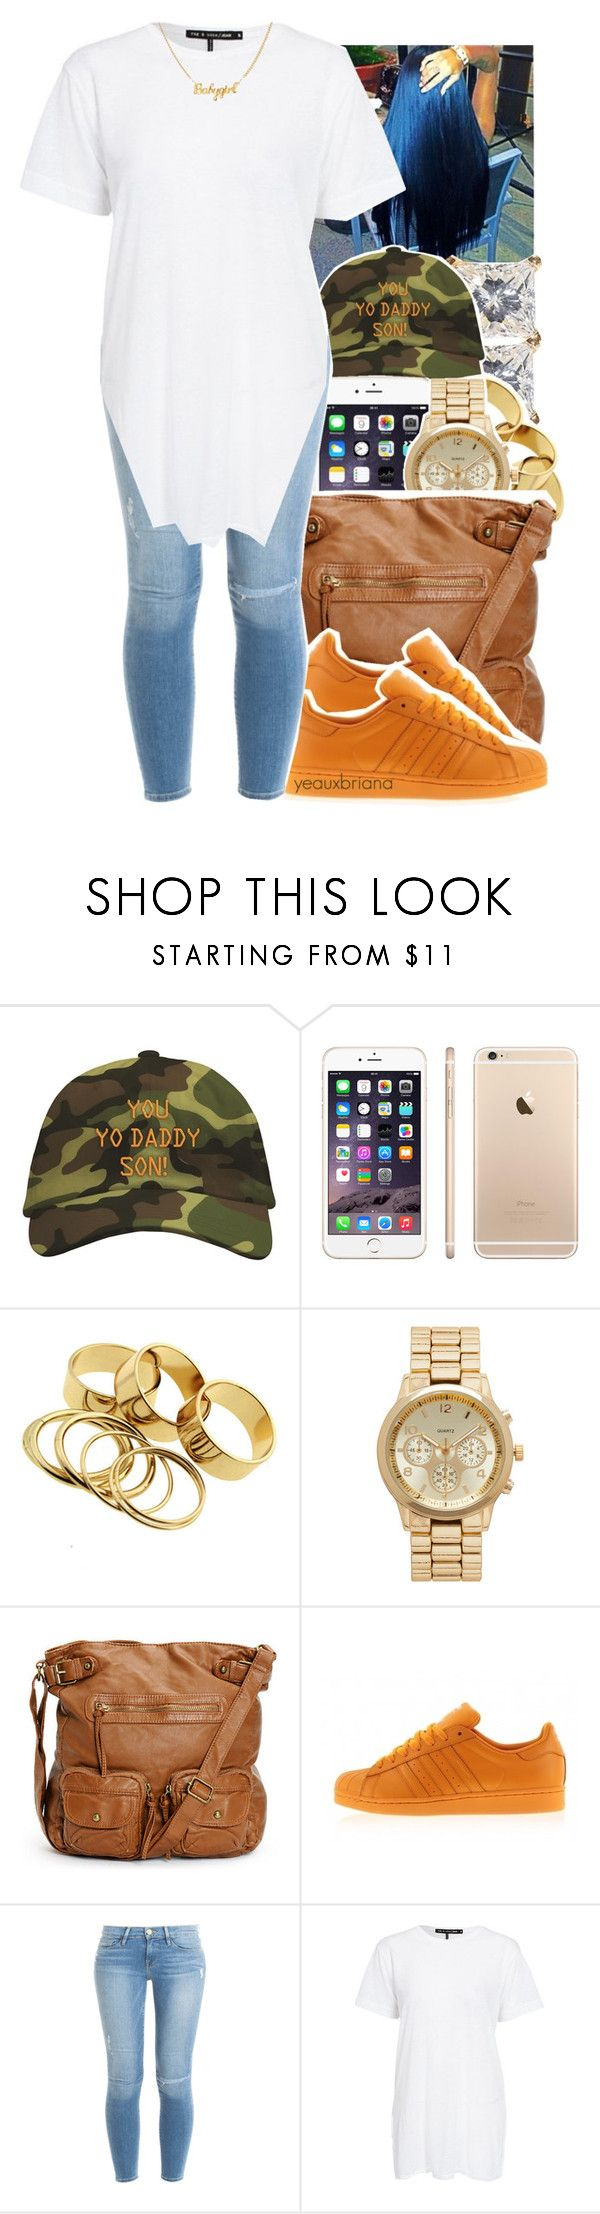 """4/1/2017"" by yeauxbriana ❤ liked on Polyvore featuring Forever New, adidas and Frame"